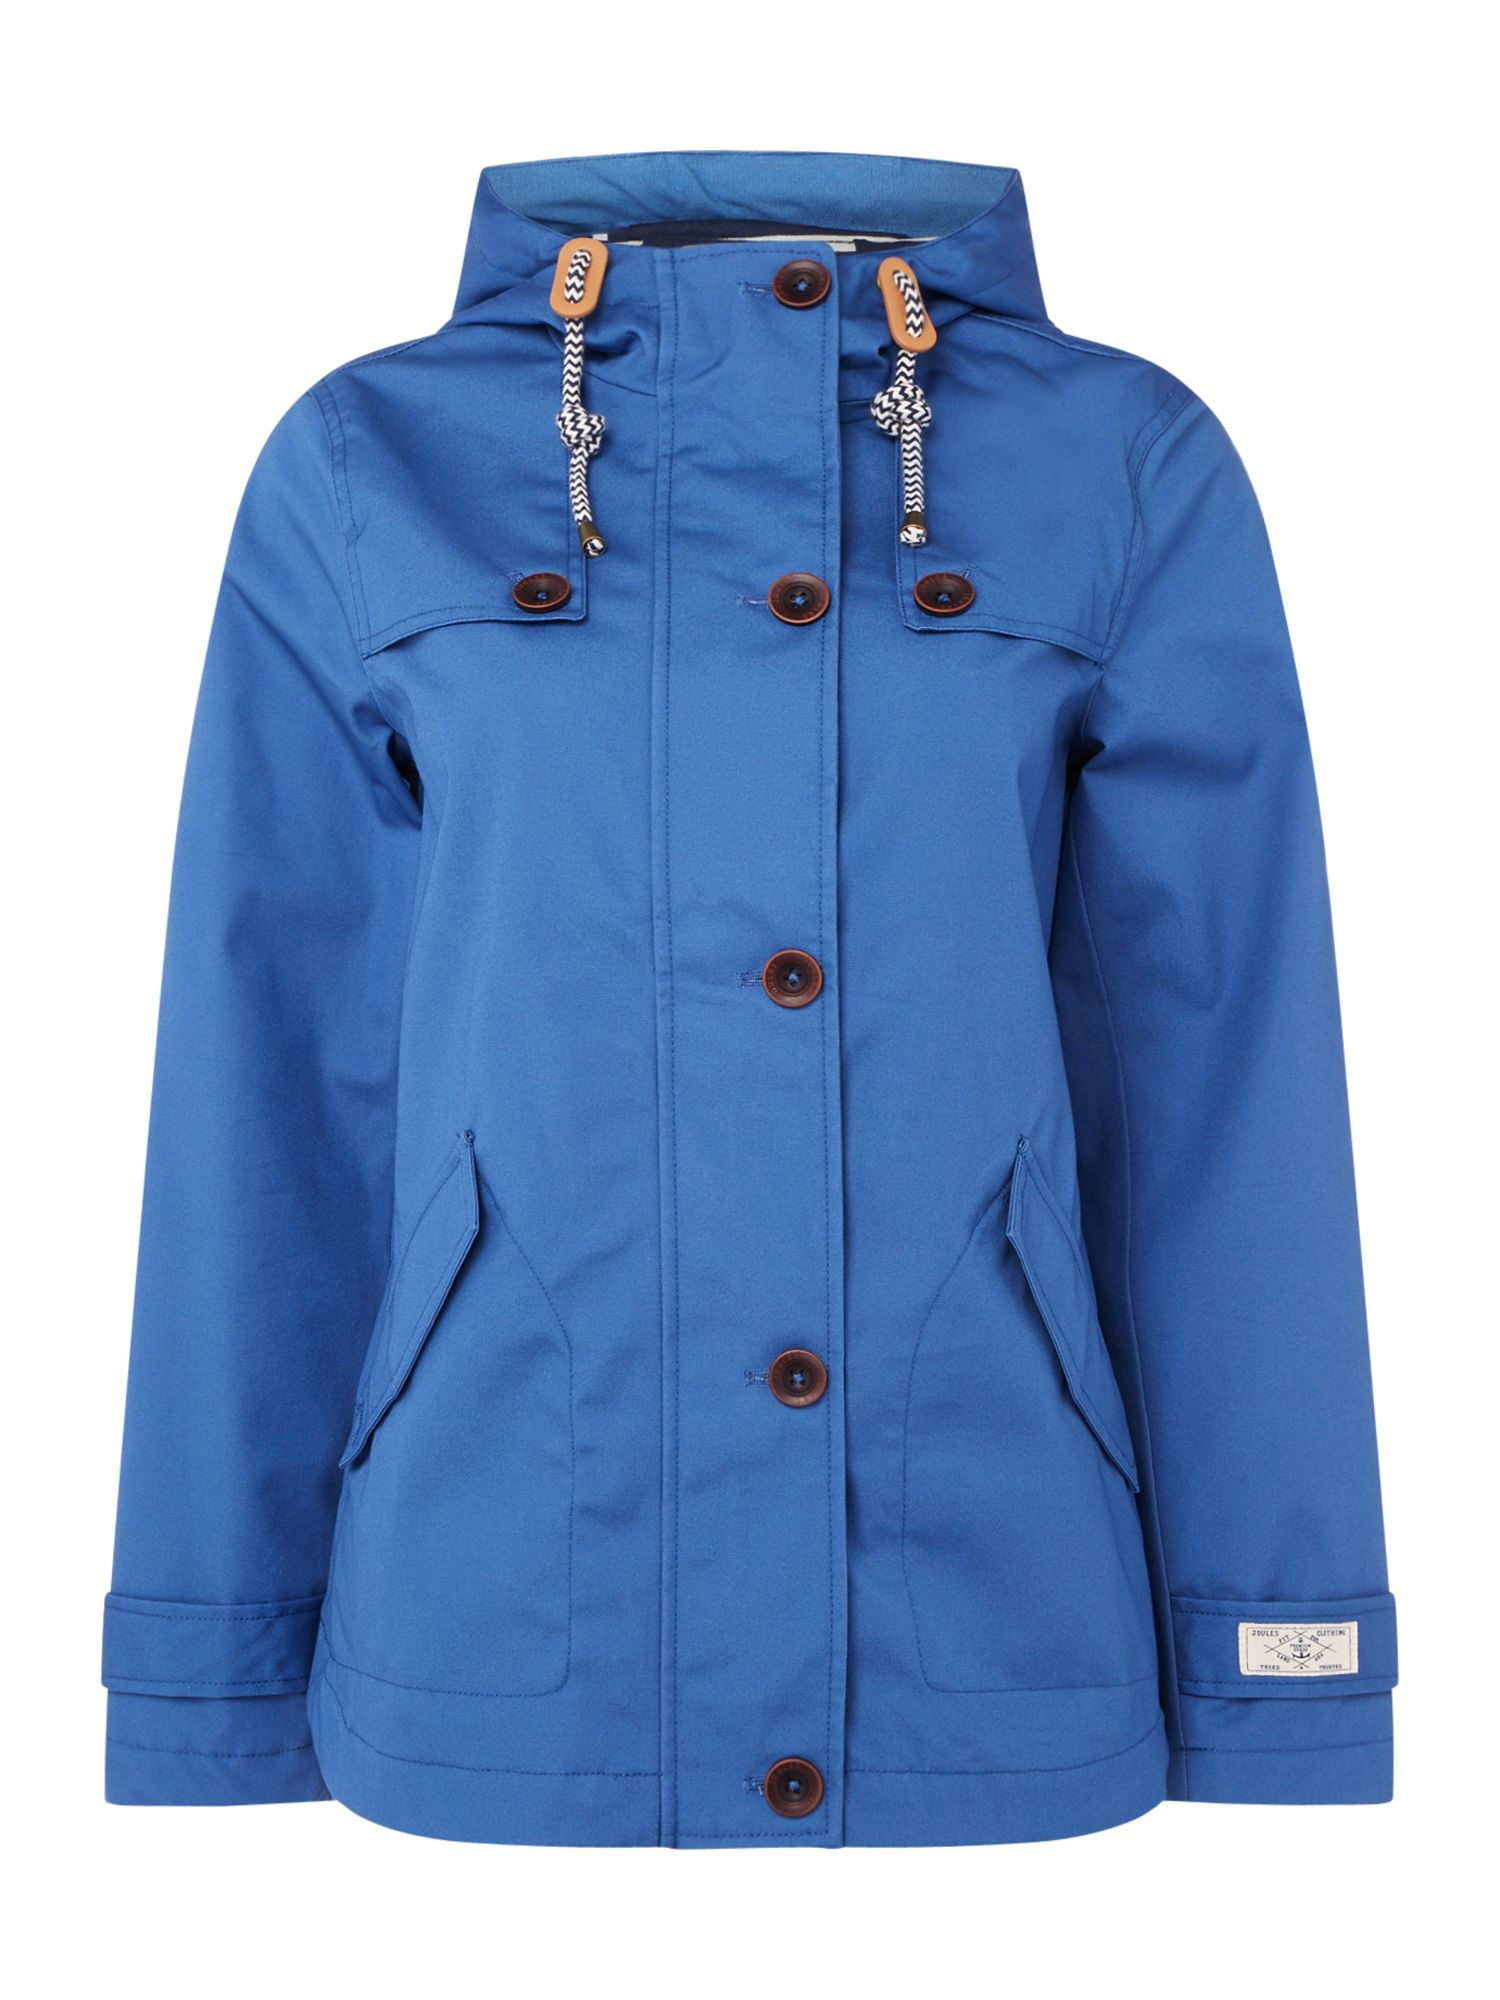 Joules Long sleeves hooded waterproof jacket, Blue